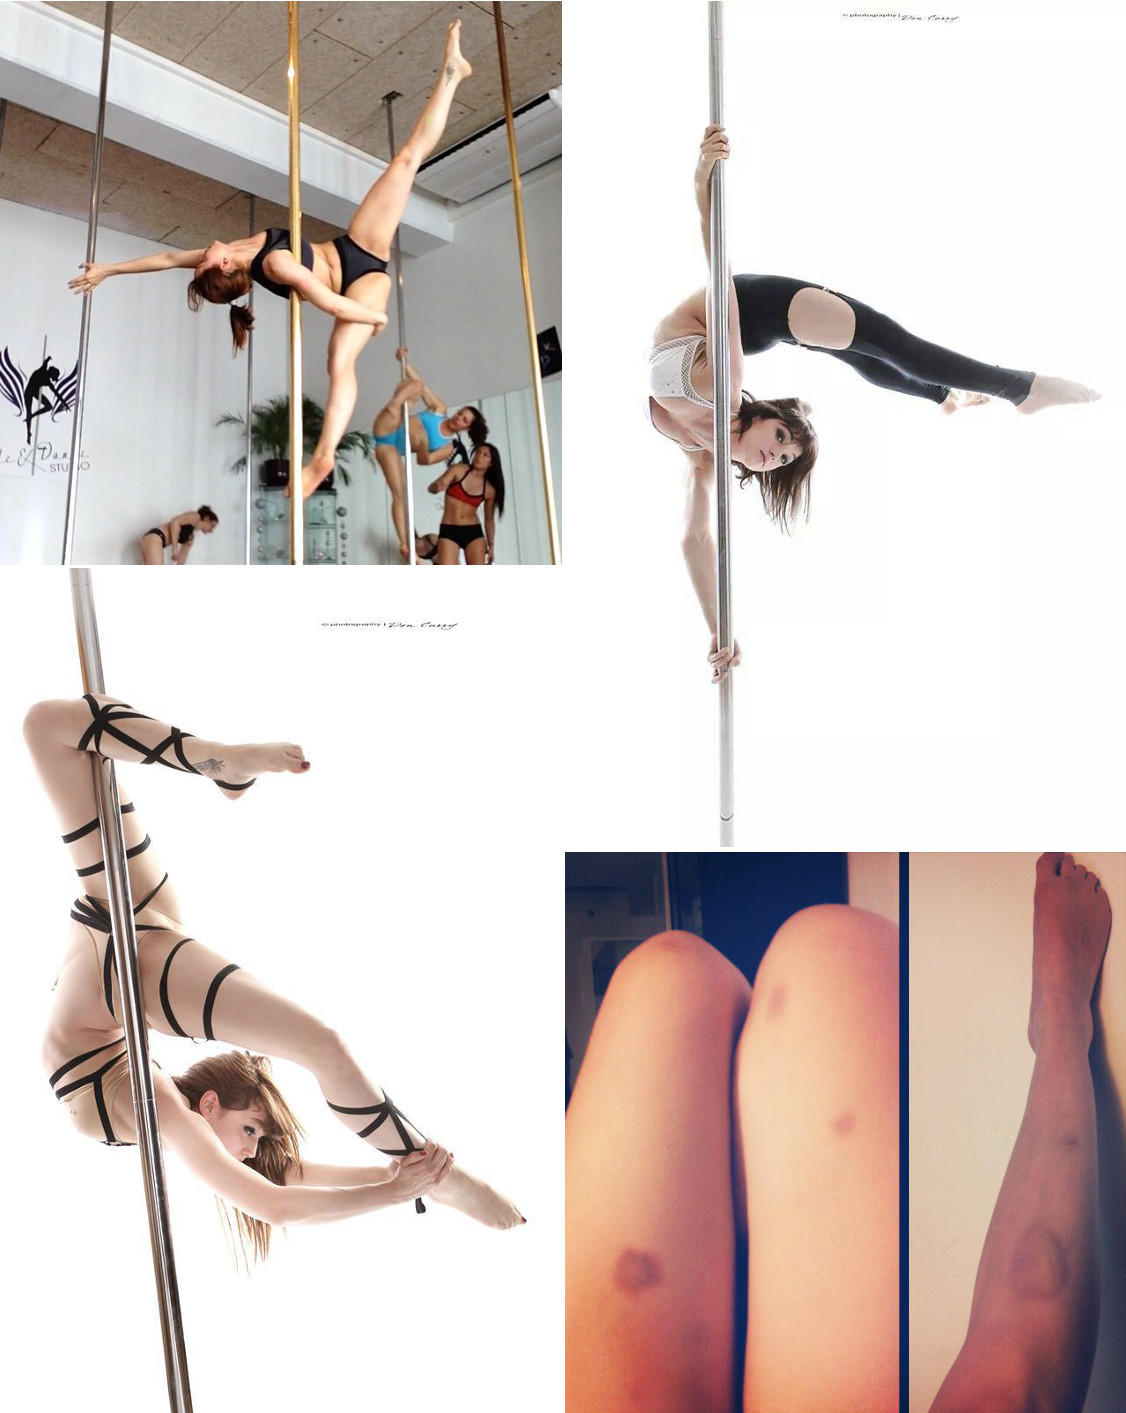 Excercise with stripper poles